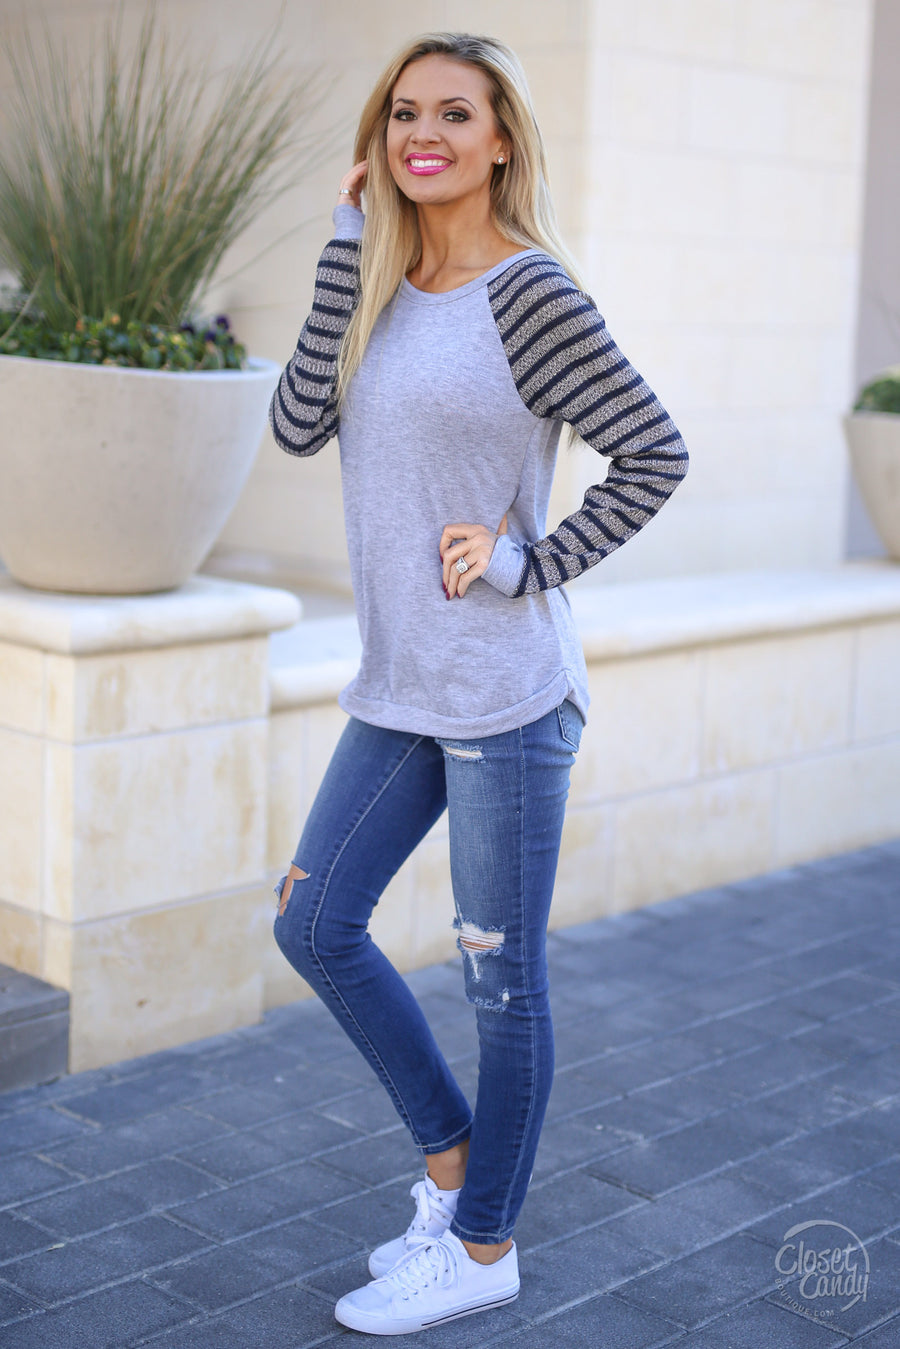 Only in the Midwest Top - Heather Grey/Navy raglan stripe top, front, Closet Candy Boutique